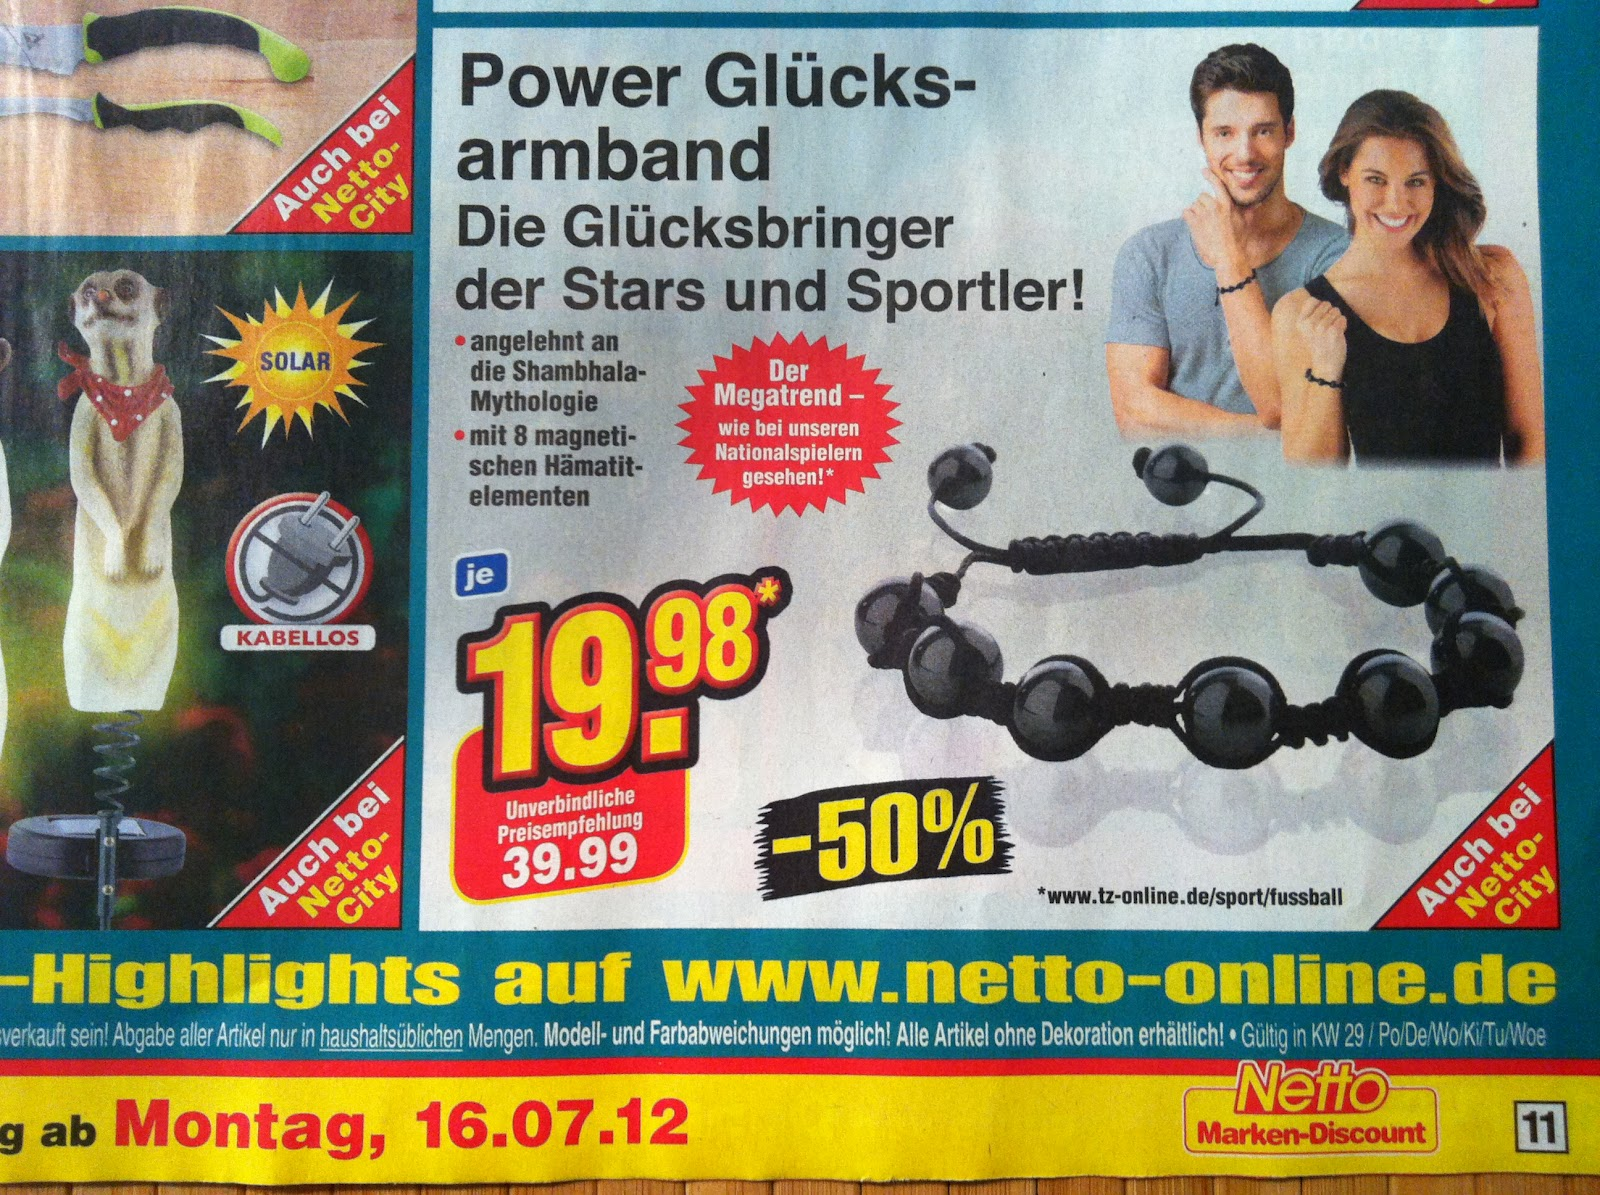 mike seine welt schnell zugreifen power gl cksbringer beim discounter. Black Bedroom Furniture Sets. Home Design Ideas